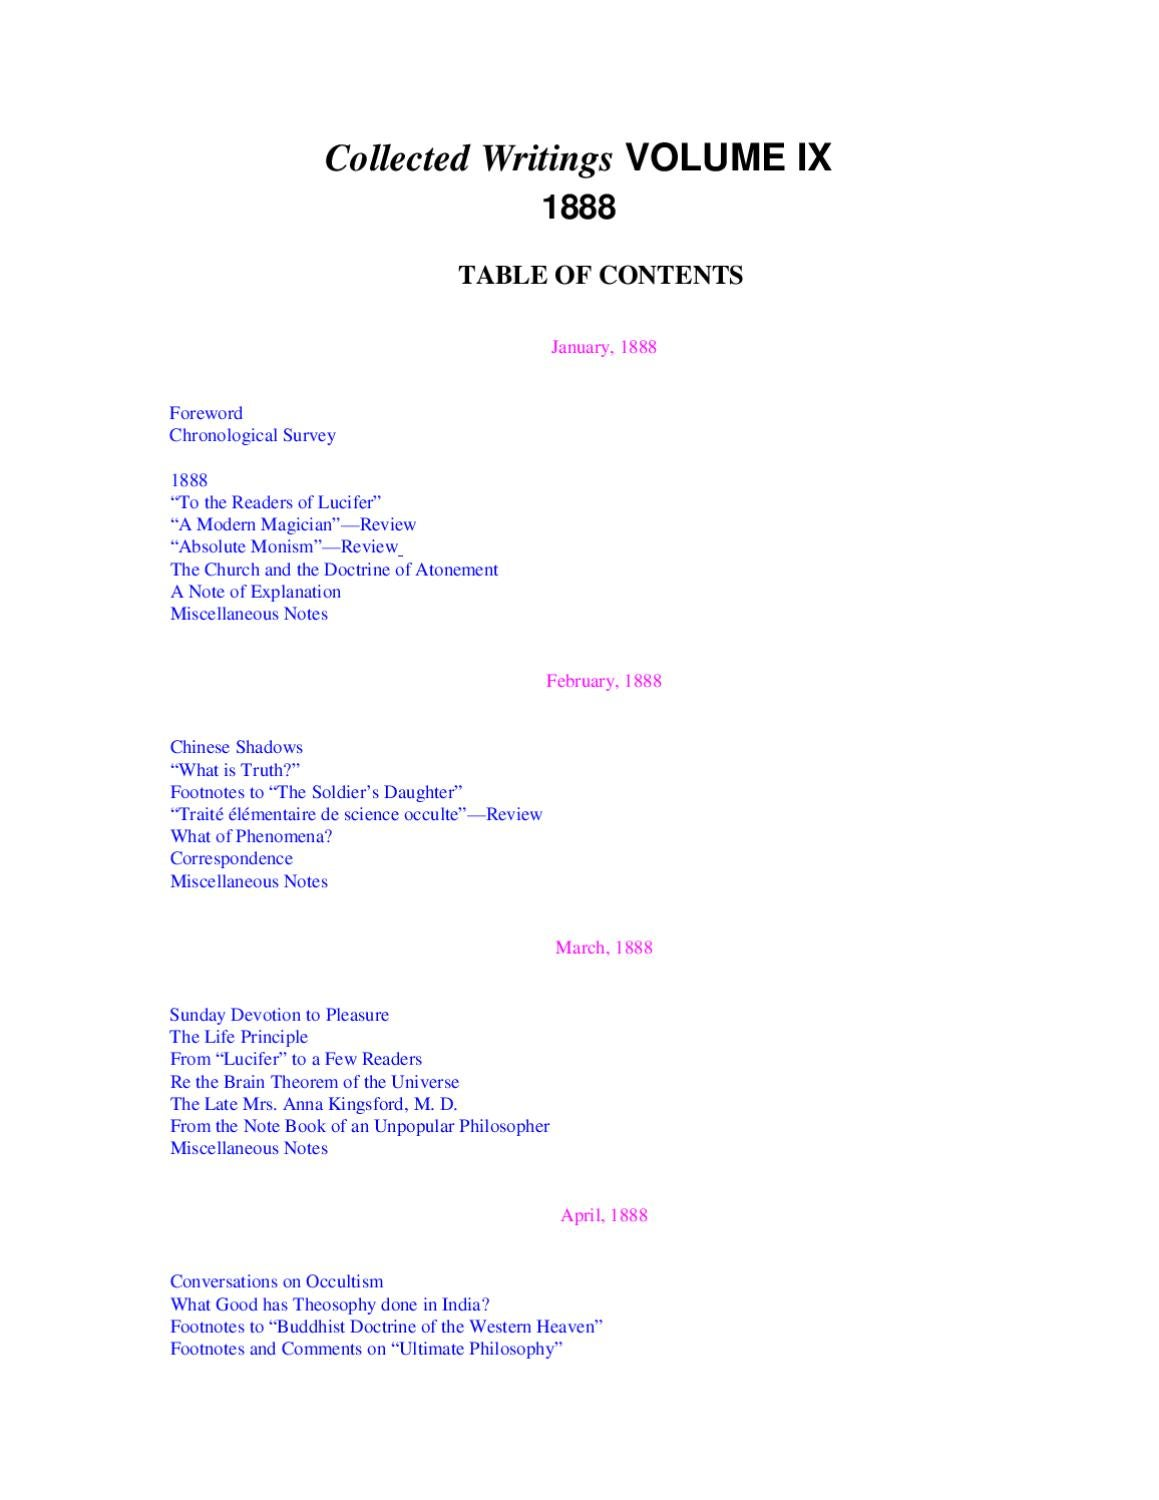 Collected Writings Volume IX (1888) by group24 - issuu 1c933b58f65